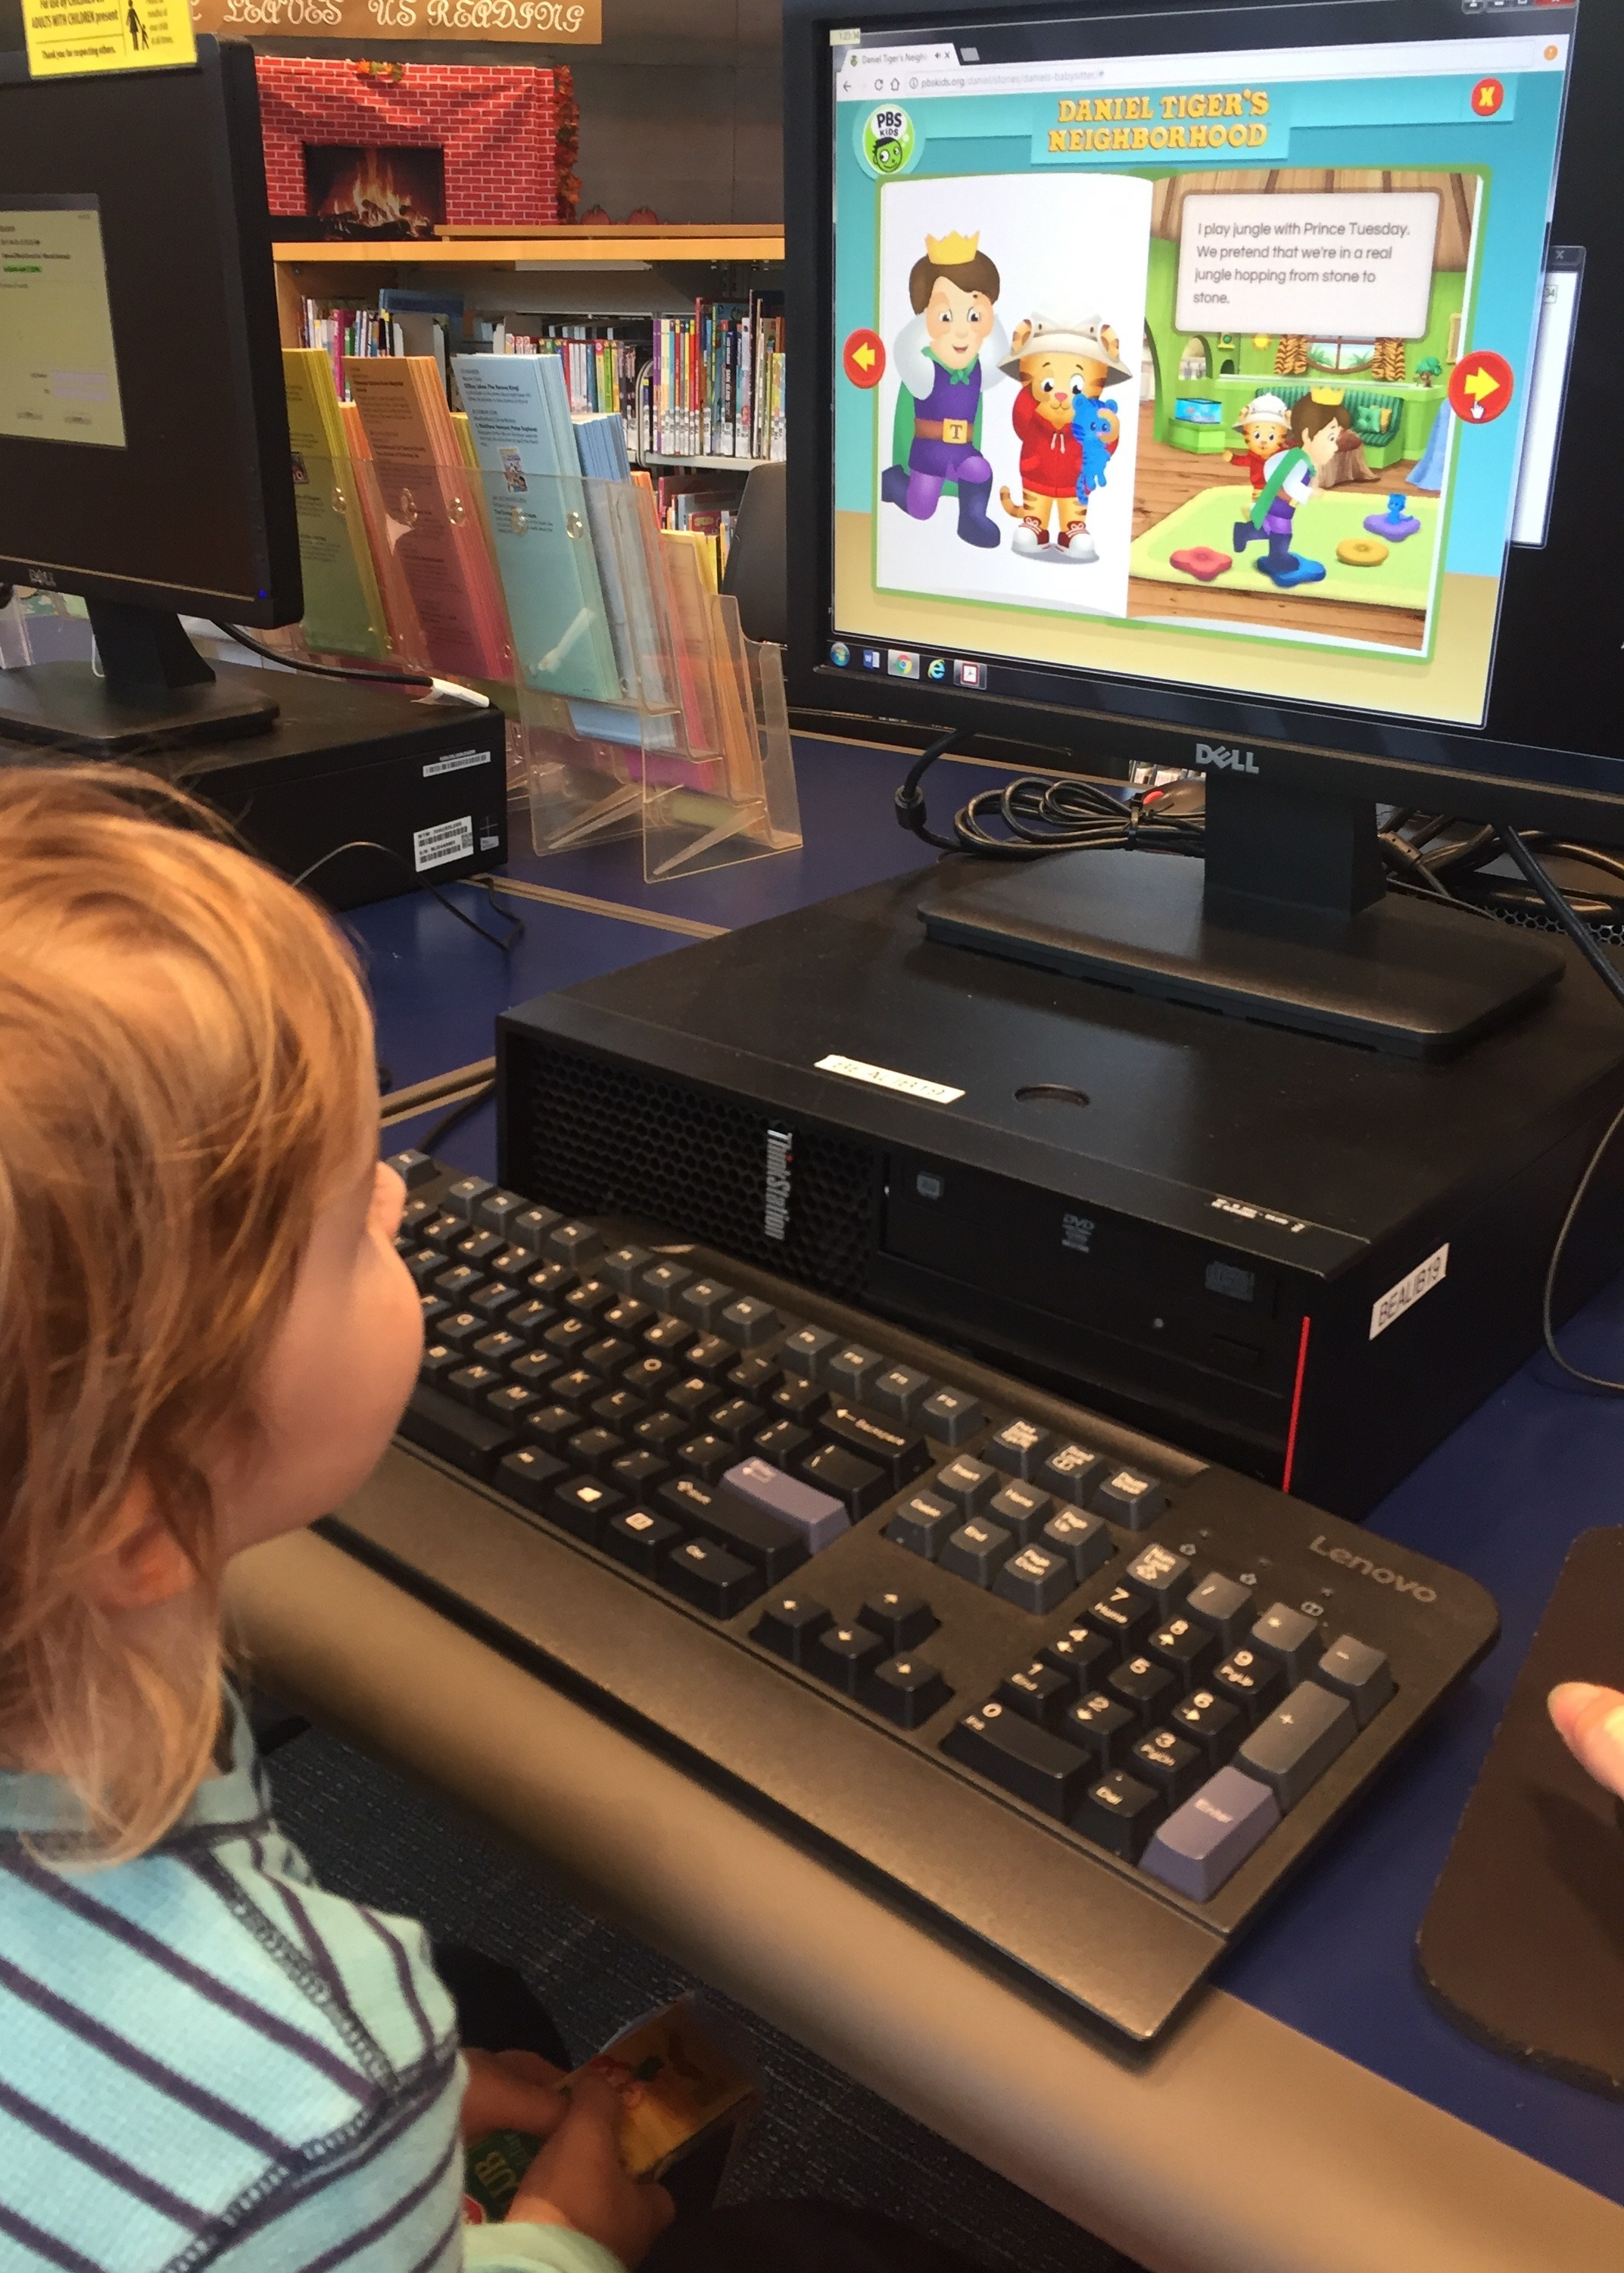 Child looking at PBS kids on computer screen